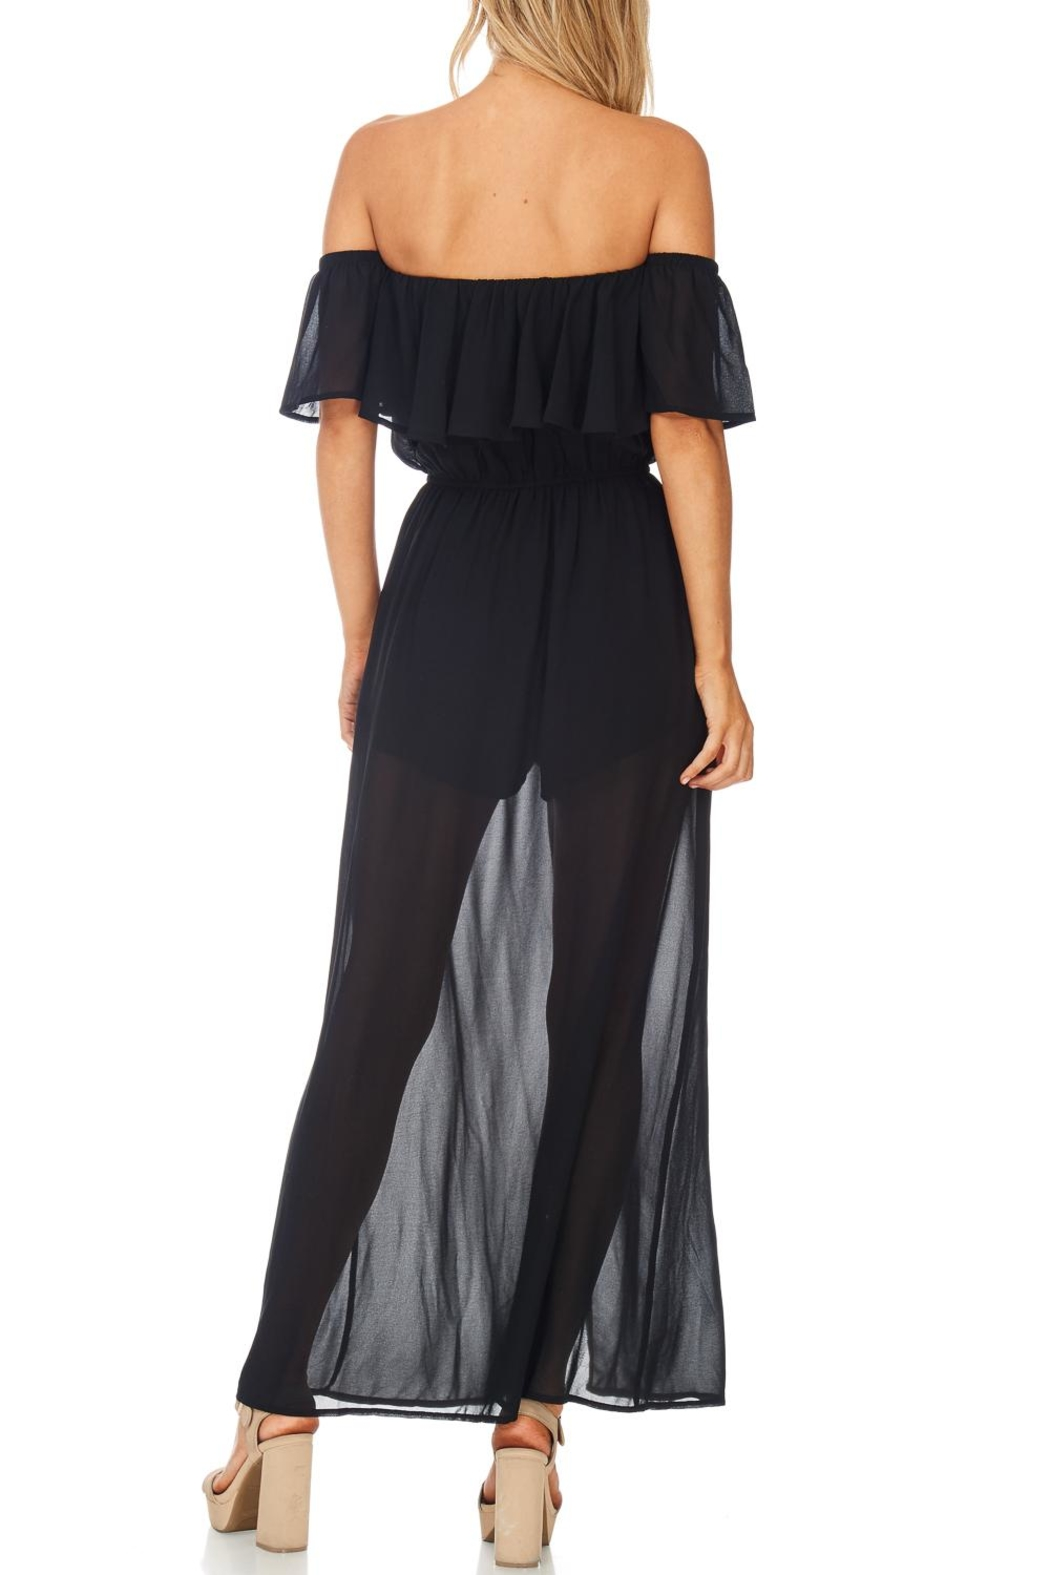 She + Sky Off Shoulder Maxi Romper - Side Cropped Image